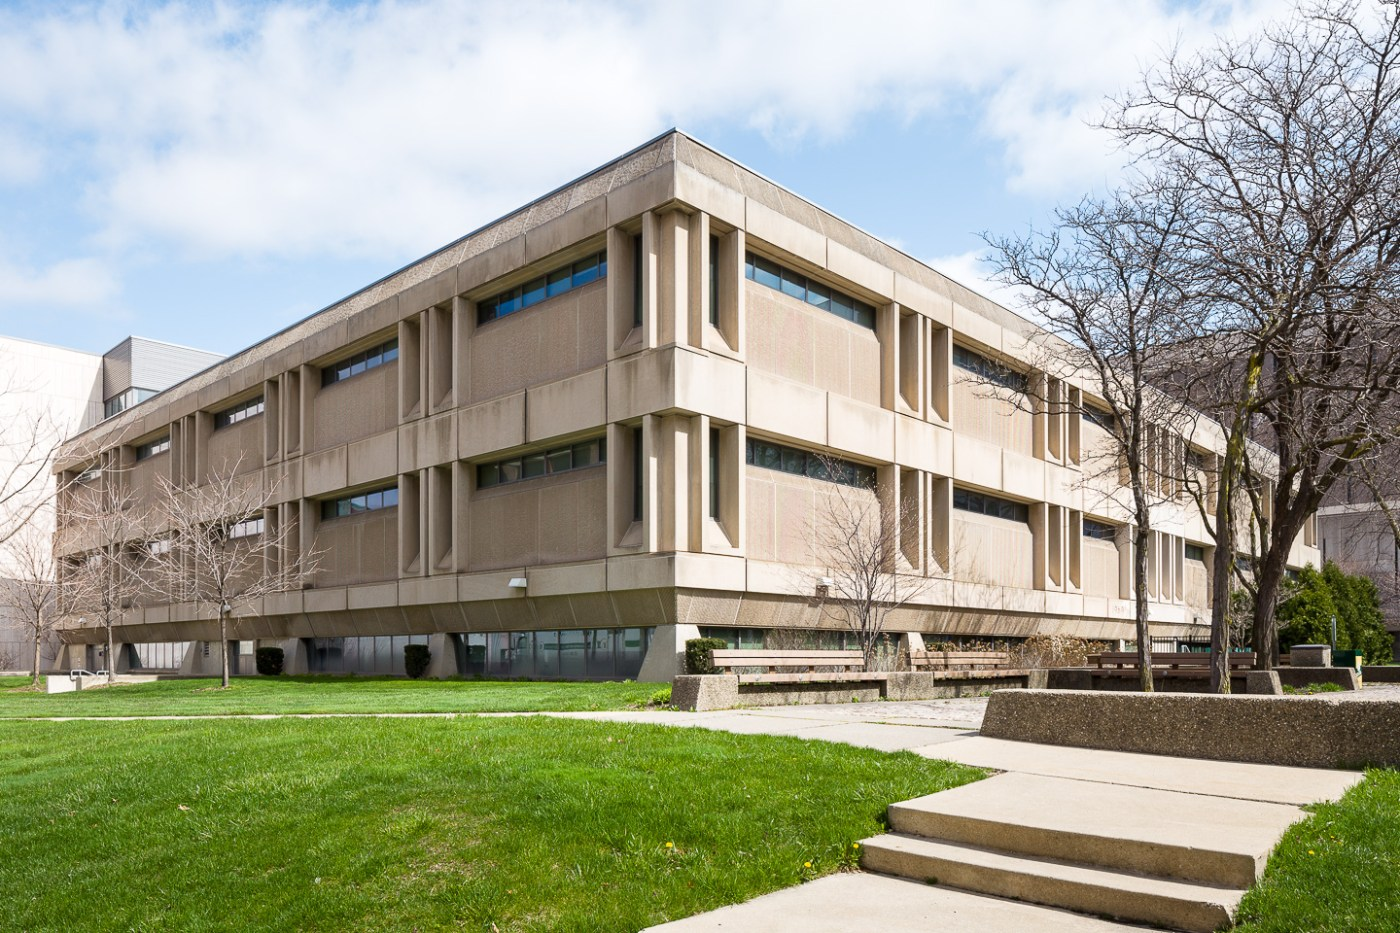 Shiffman Medical Library in Detroit by O'Dell, Hewlett, and Luckenbach. Photo by Jason R. Woods.